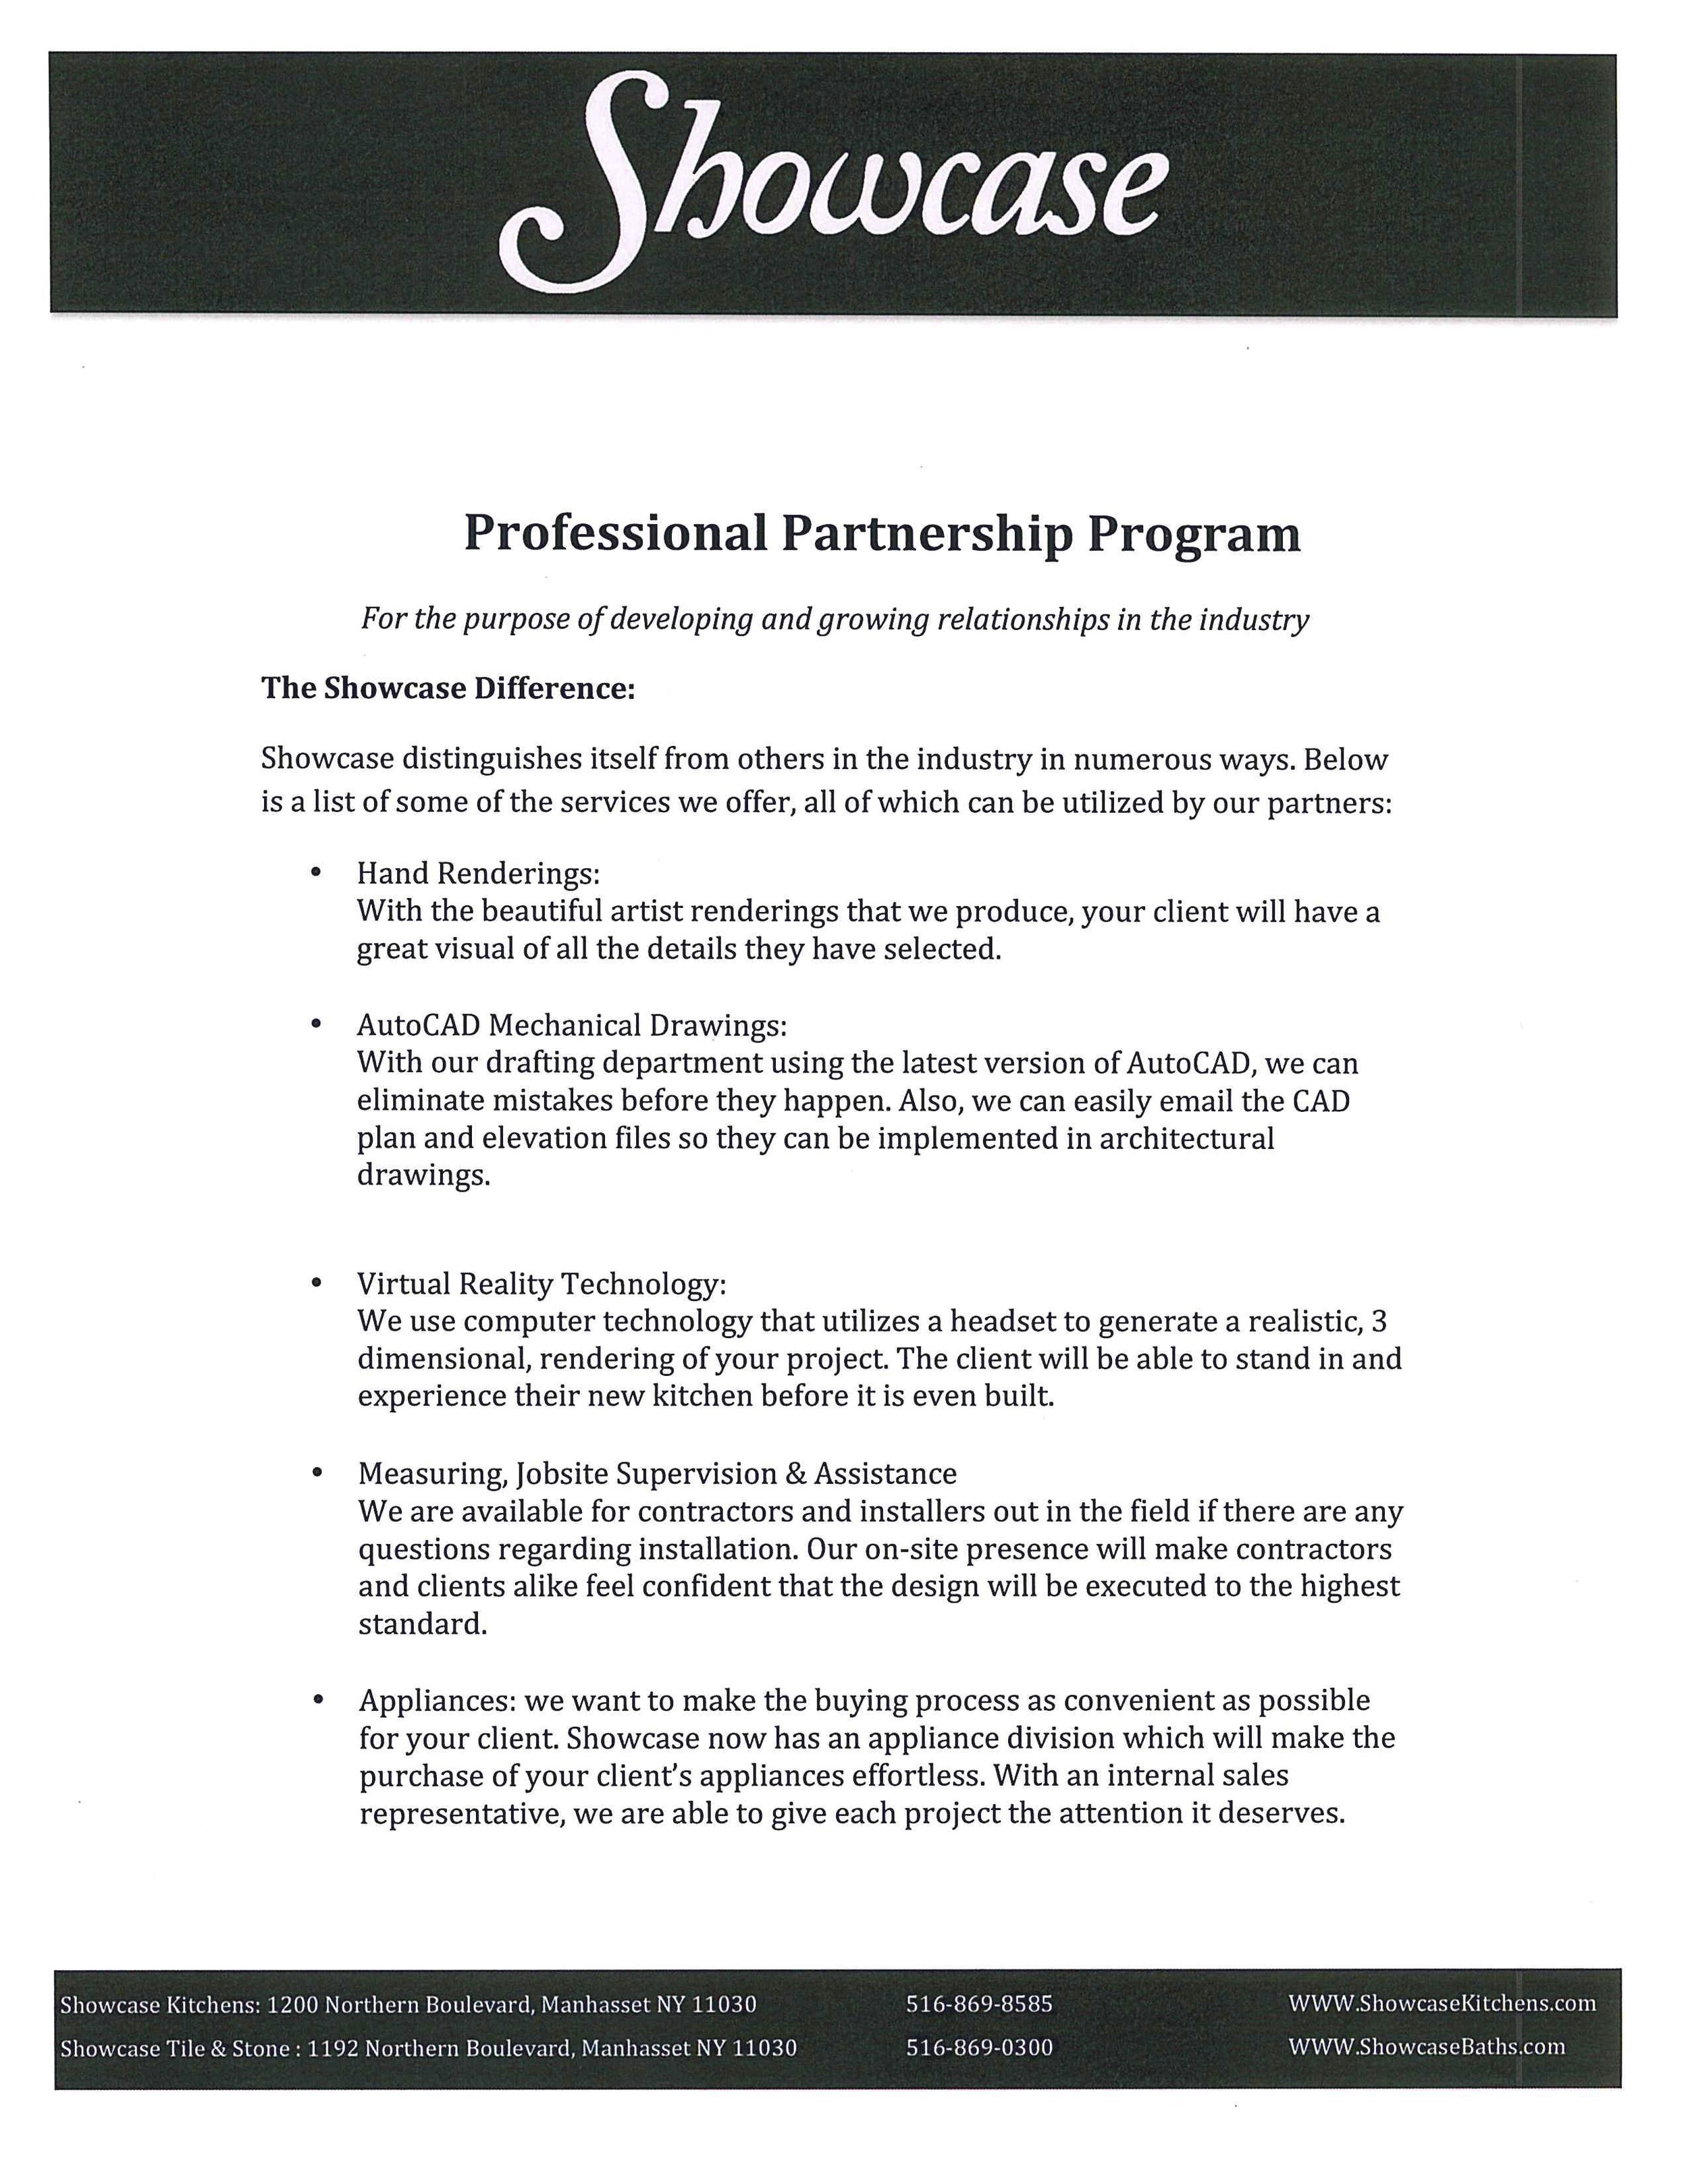 Partner Program Information page 2